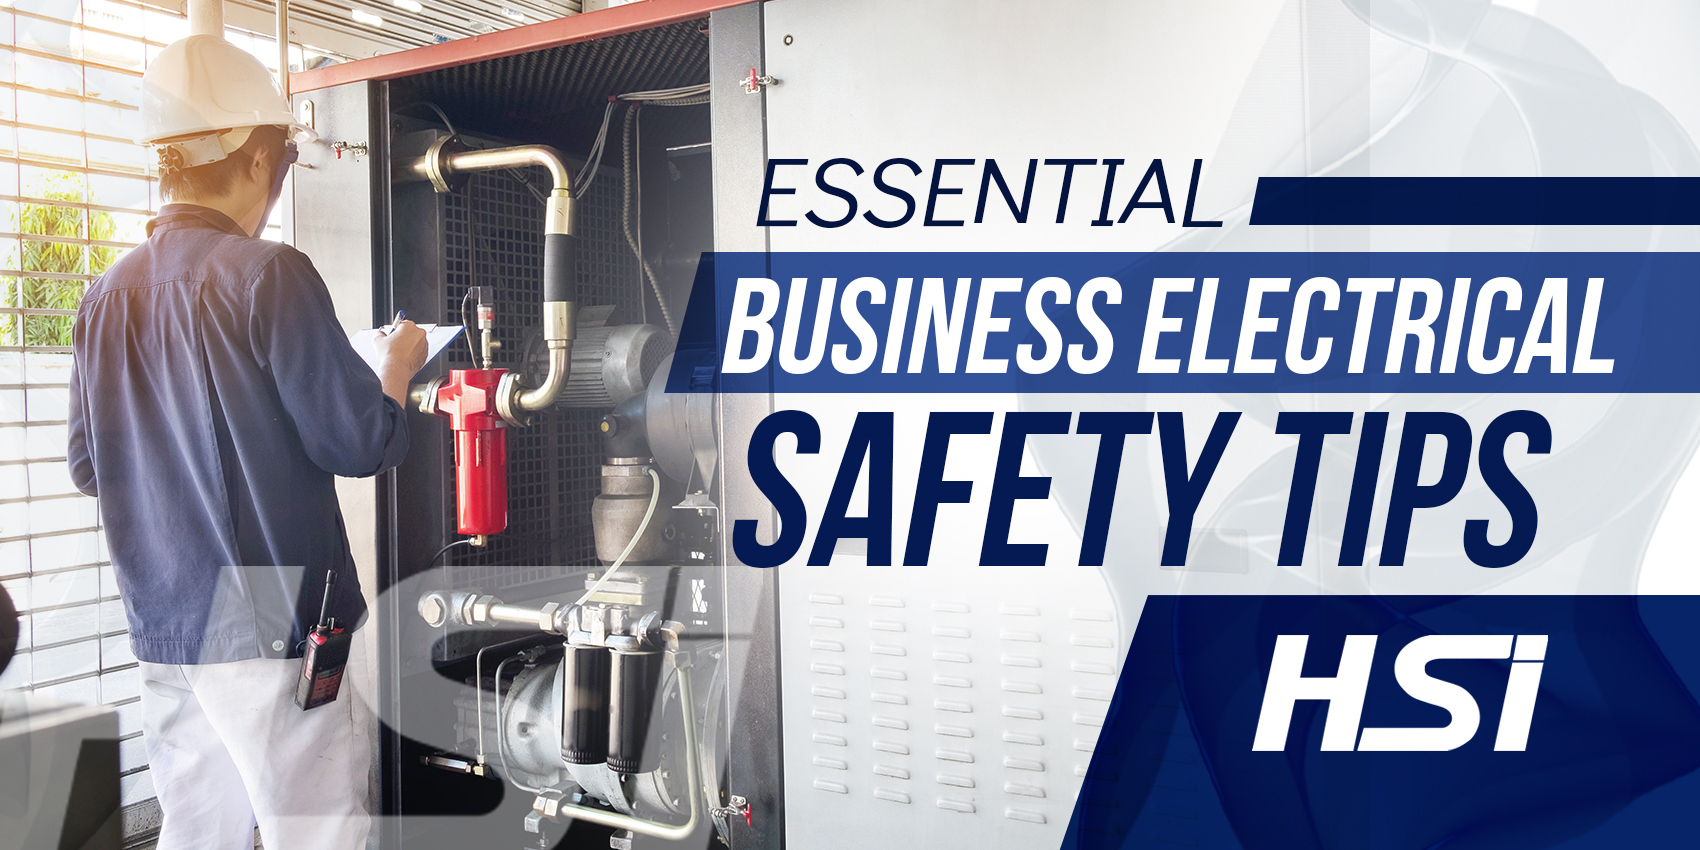 Essential Business Electrical Safety Tips